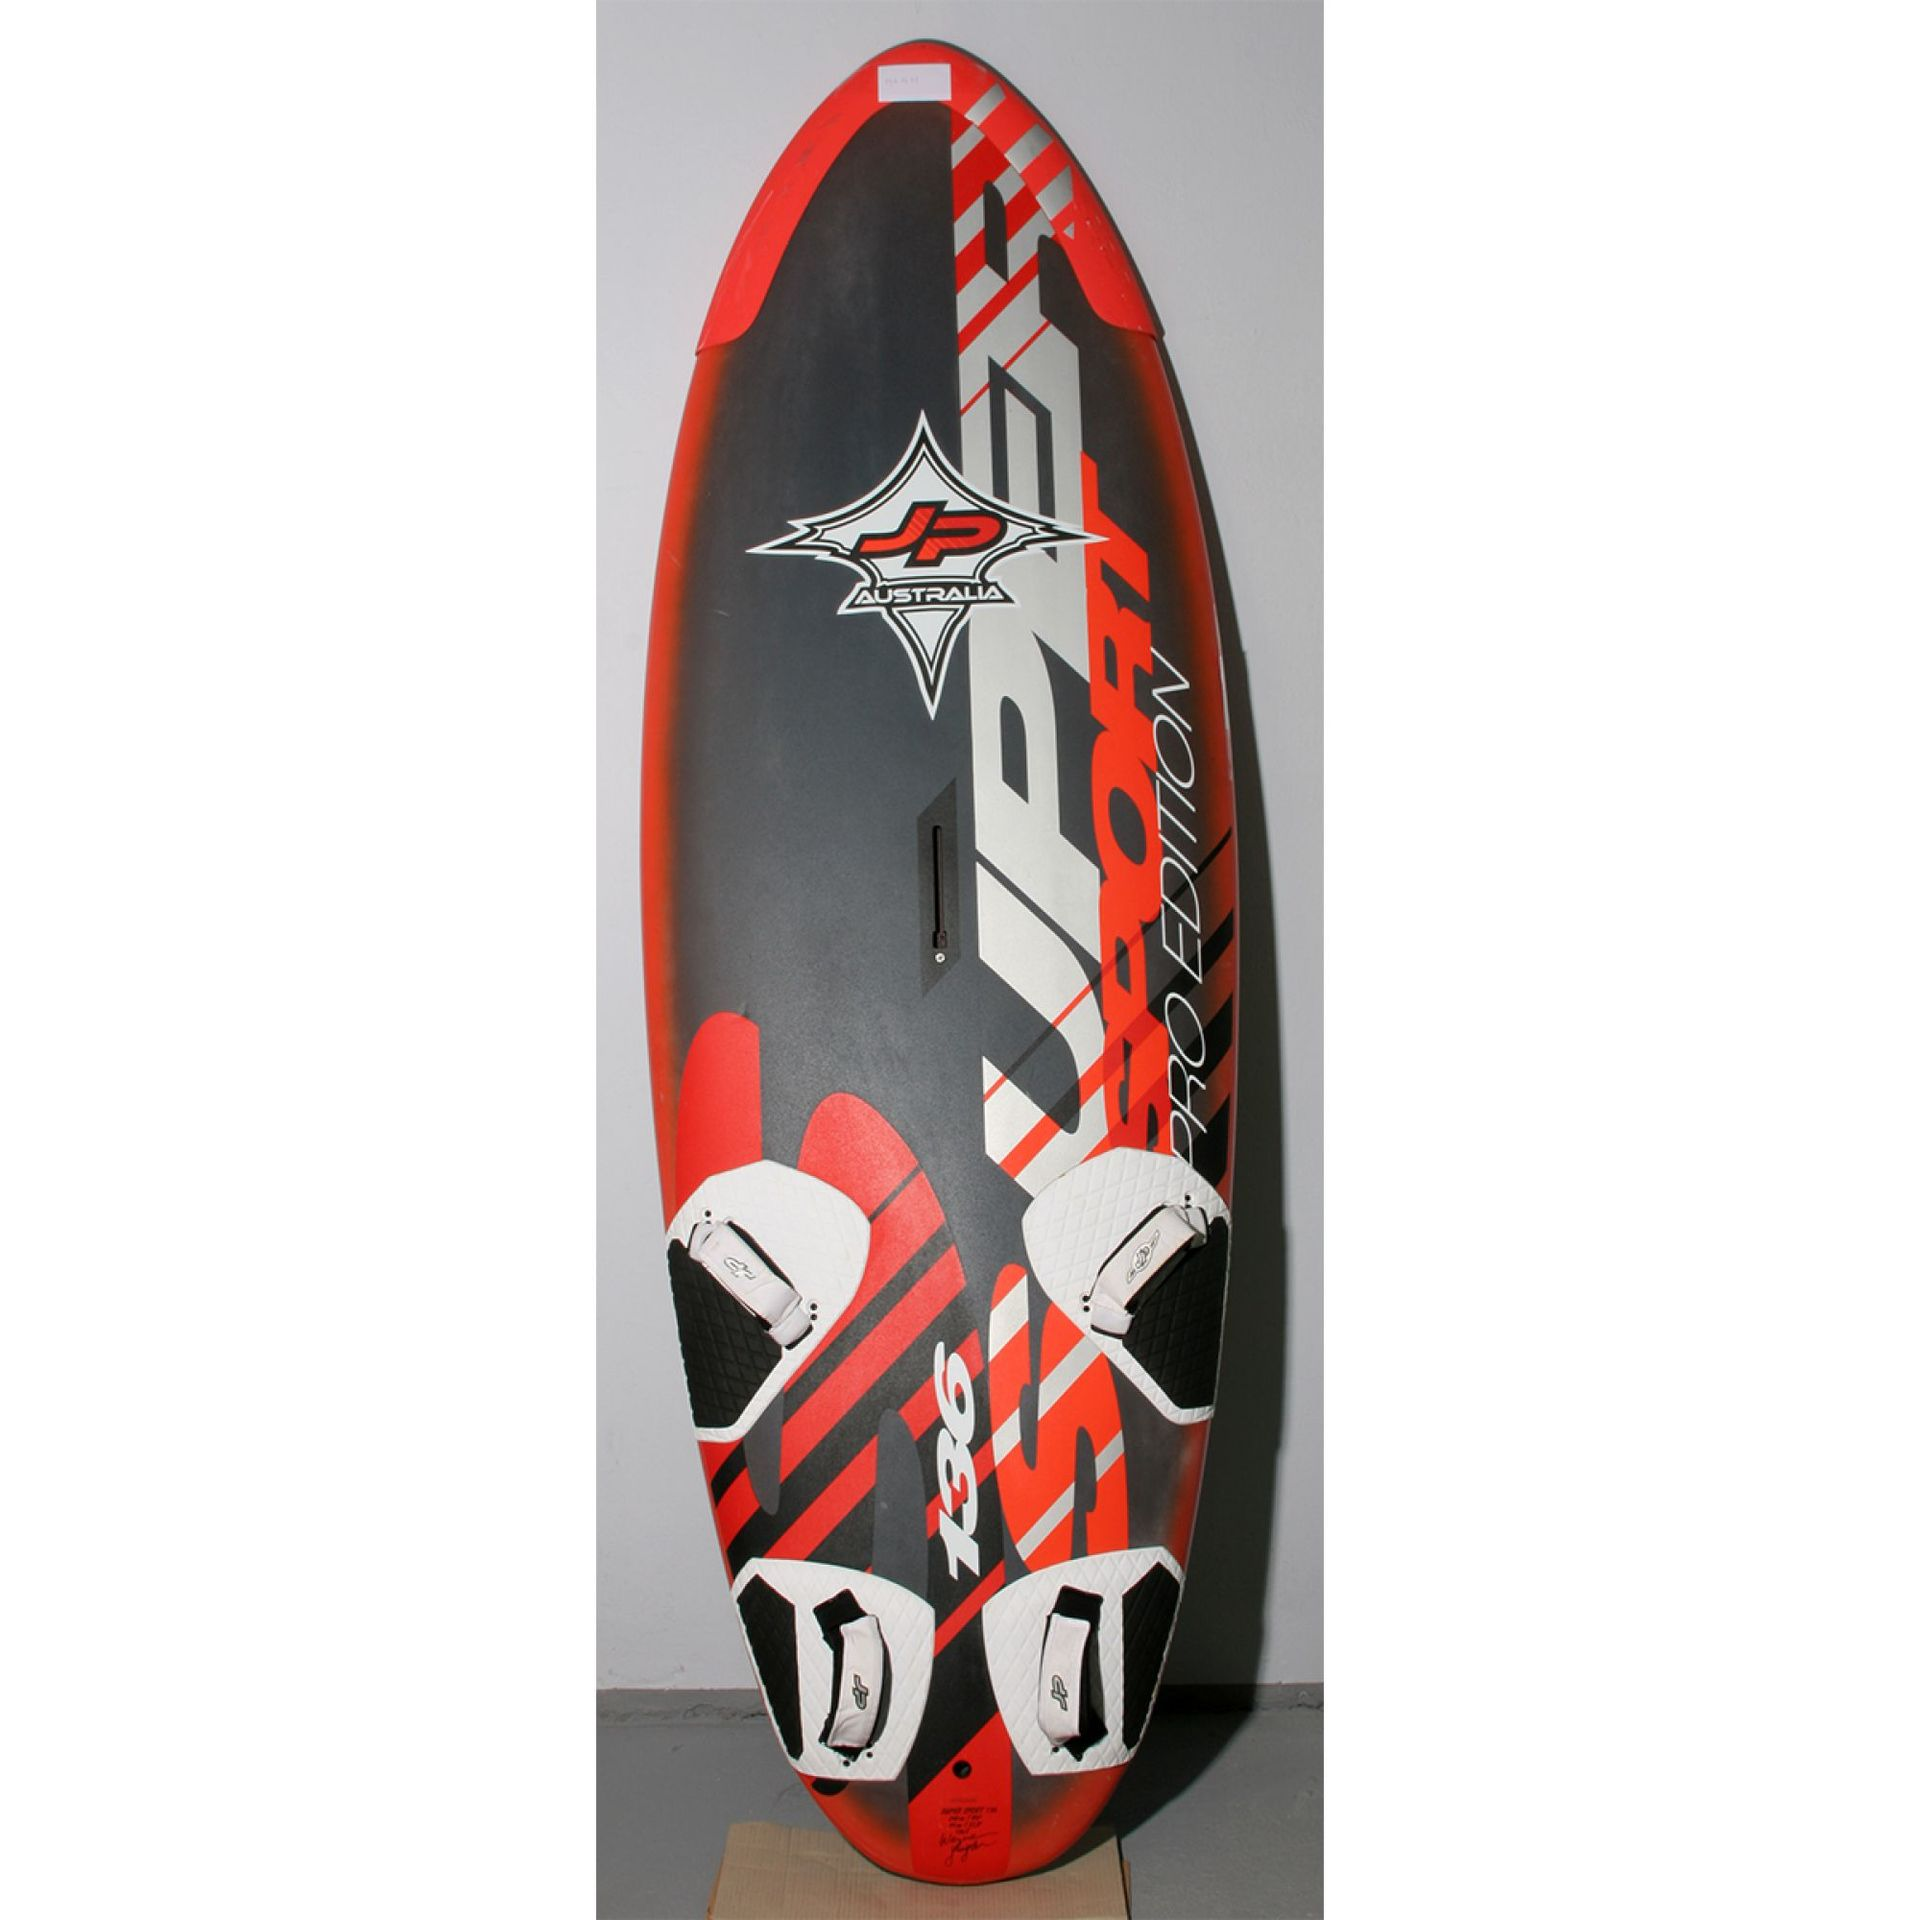 DESKA WINDSURFINGOWA JP # SUPERSPORT # CARBON KEVLAR 136